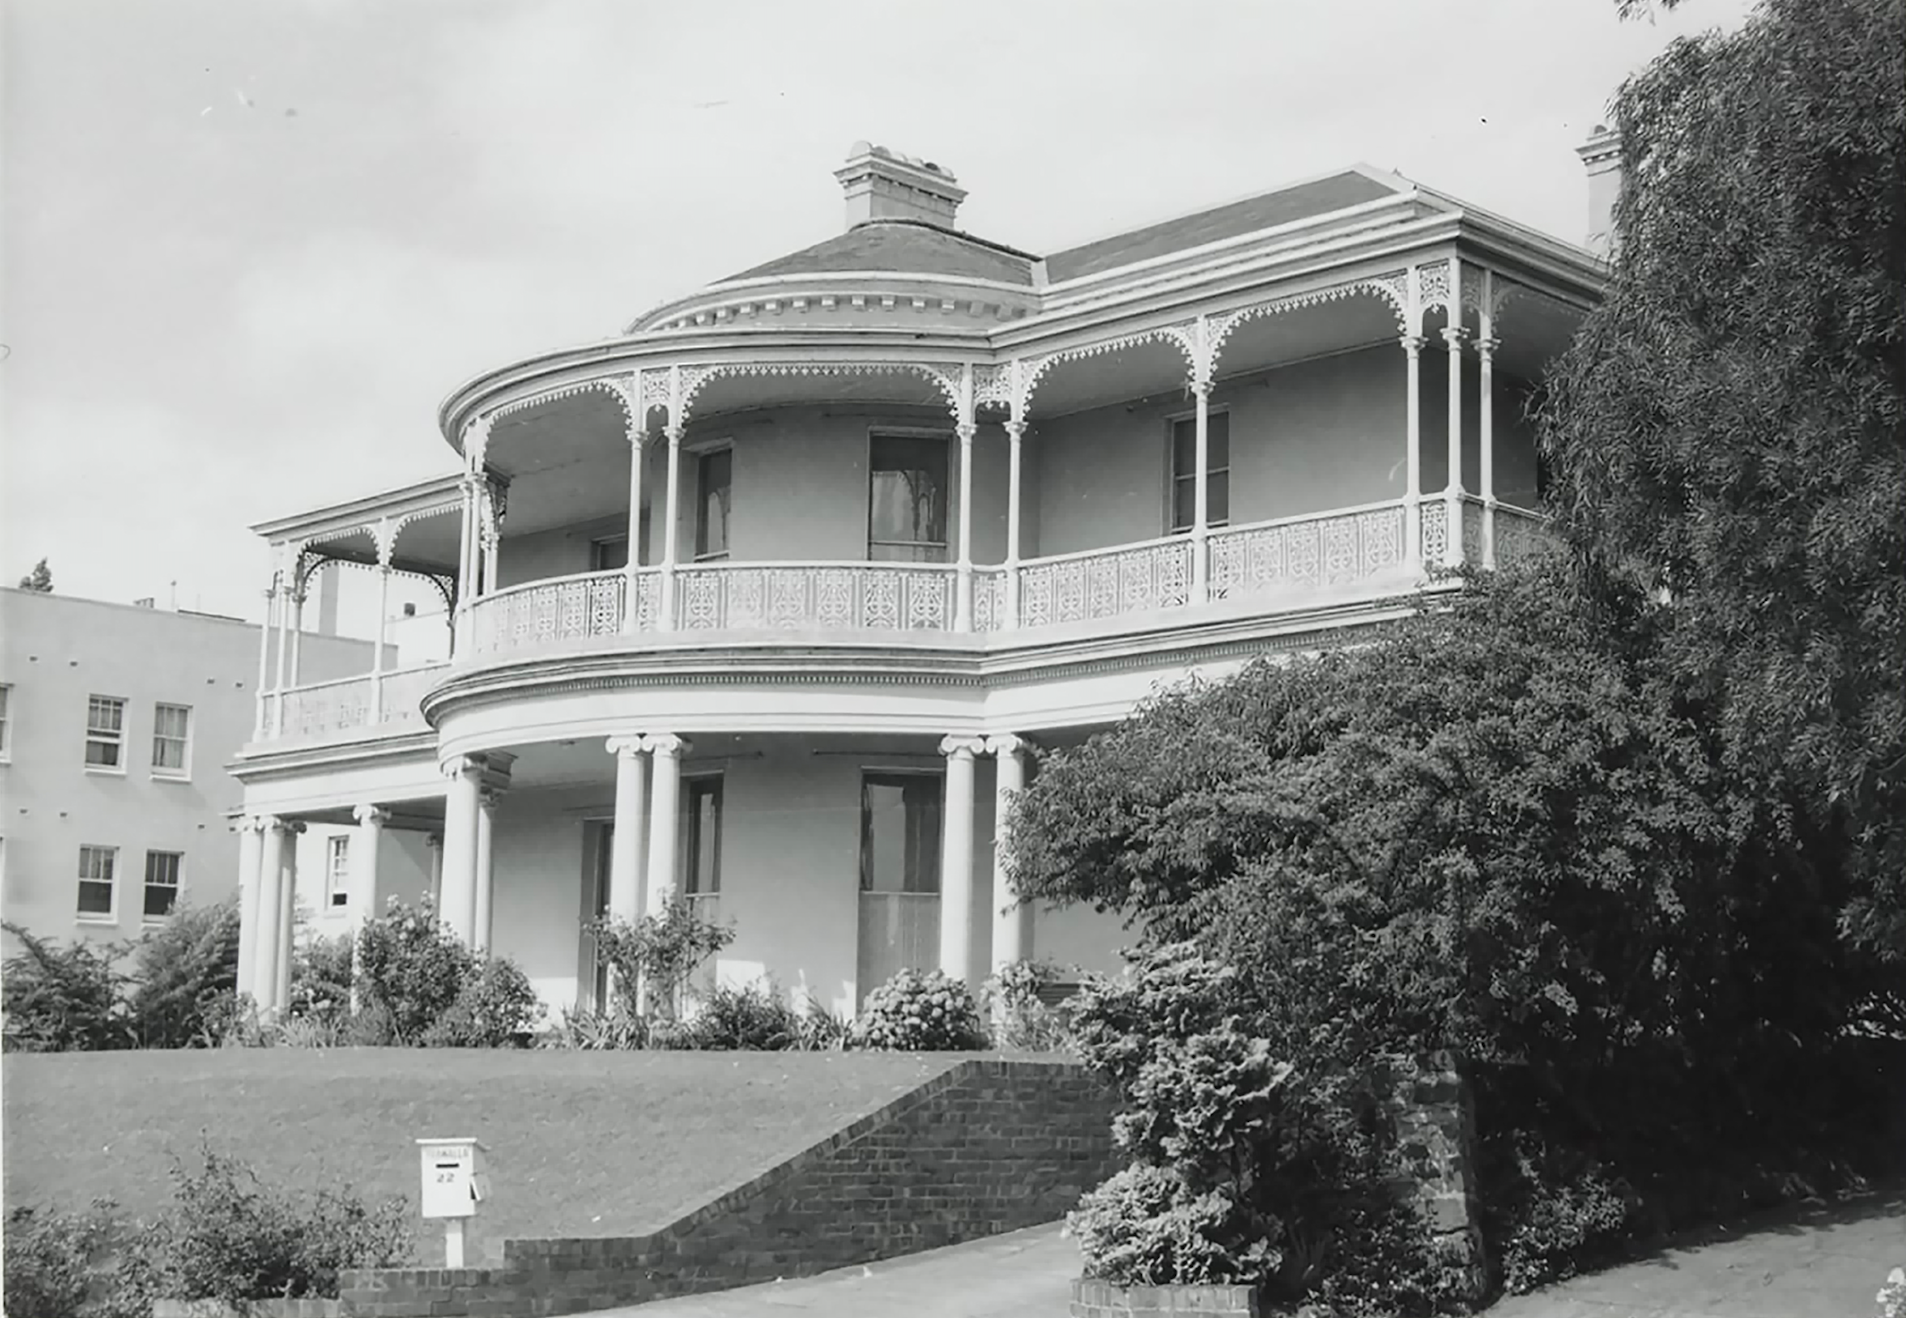 Trawalla Toorak, 1963 (Photographer: John T Collins; State Library of Victoria collection) Decorative Arts Auction Melbourne